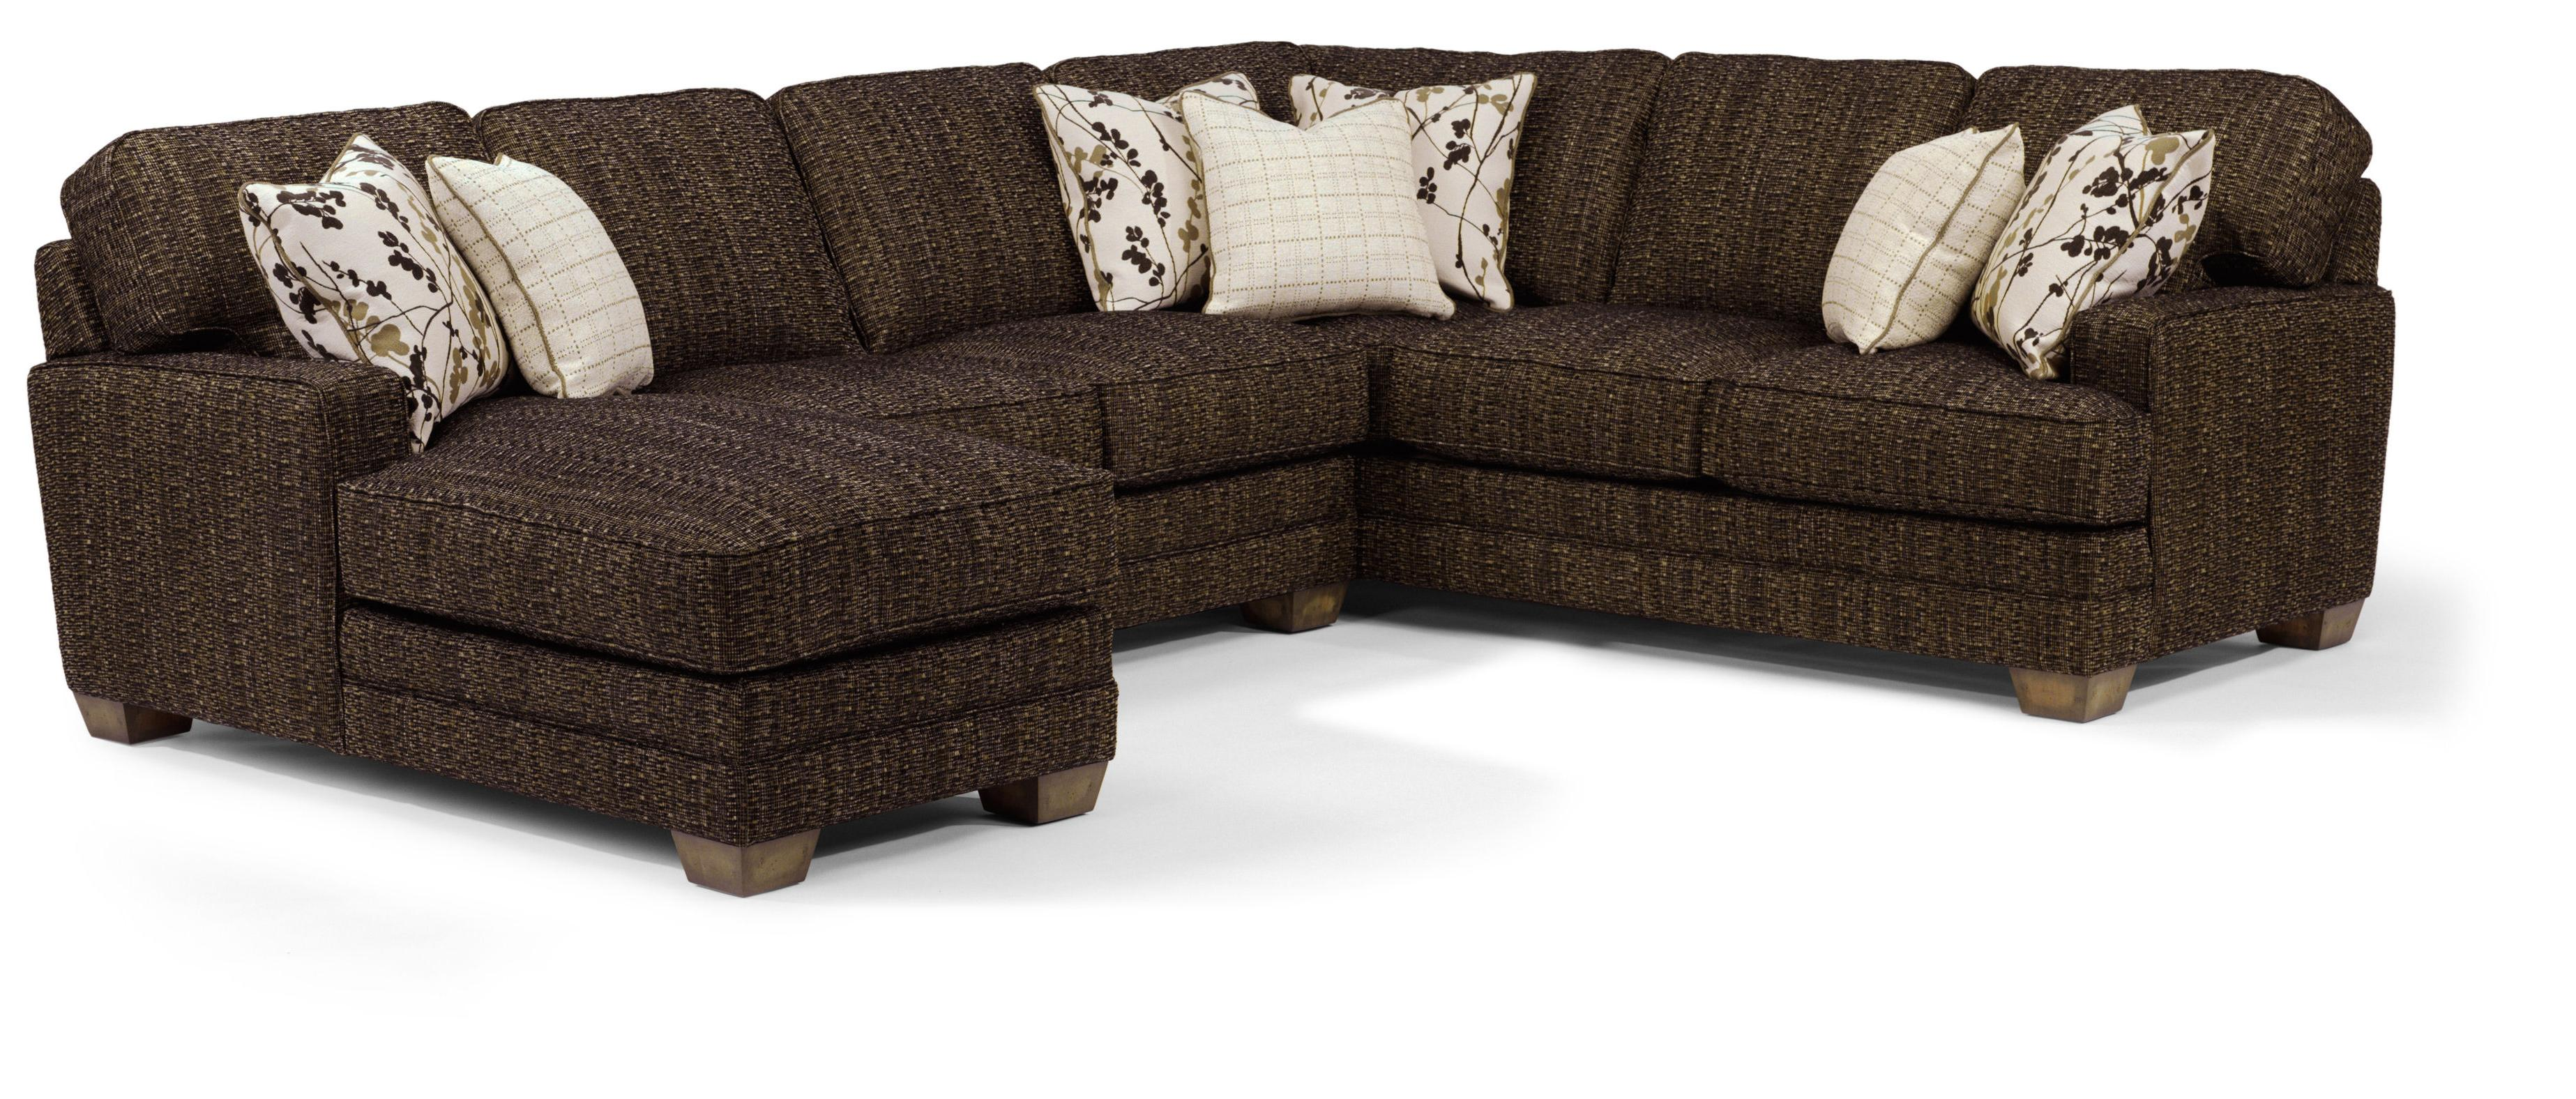 Sofa Express Pineville Nc Flexsteel That S My Style Customizable 3 Piece Sectional Sofa With